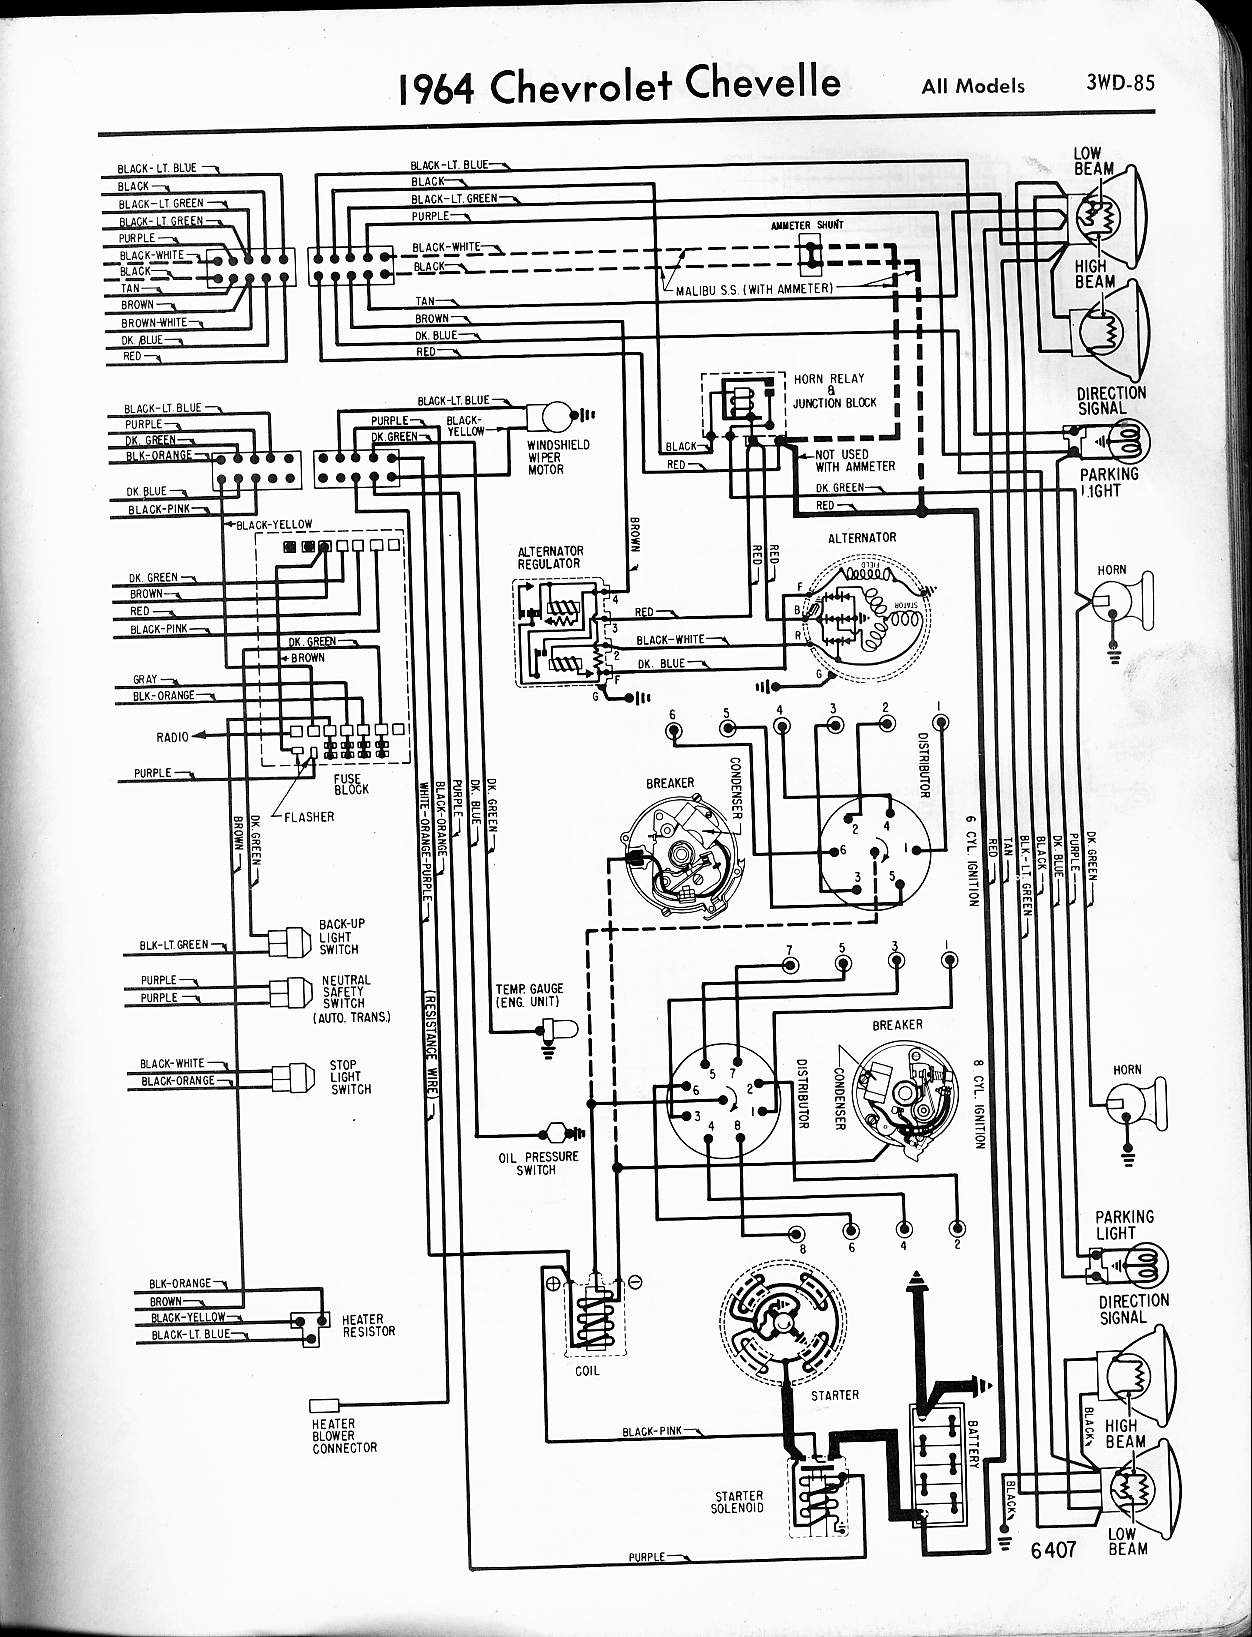 1964 Impala Fuse Box Wiring Library Besta Van Diagram Chevy Diagrams Chevelle